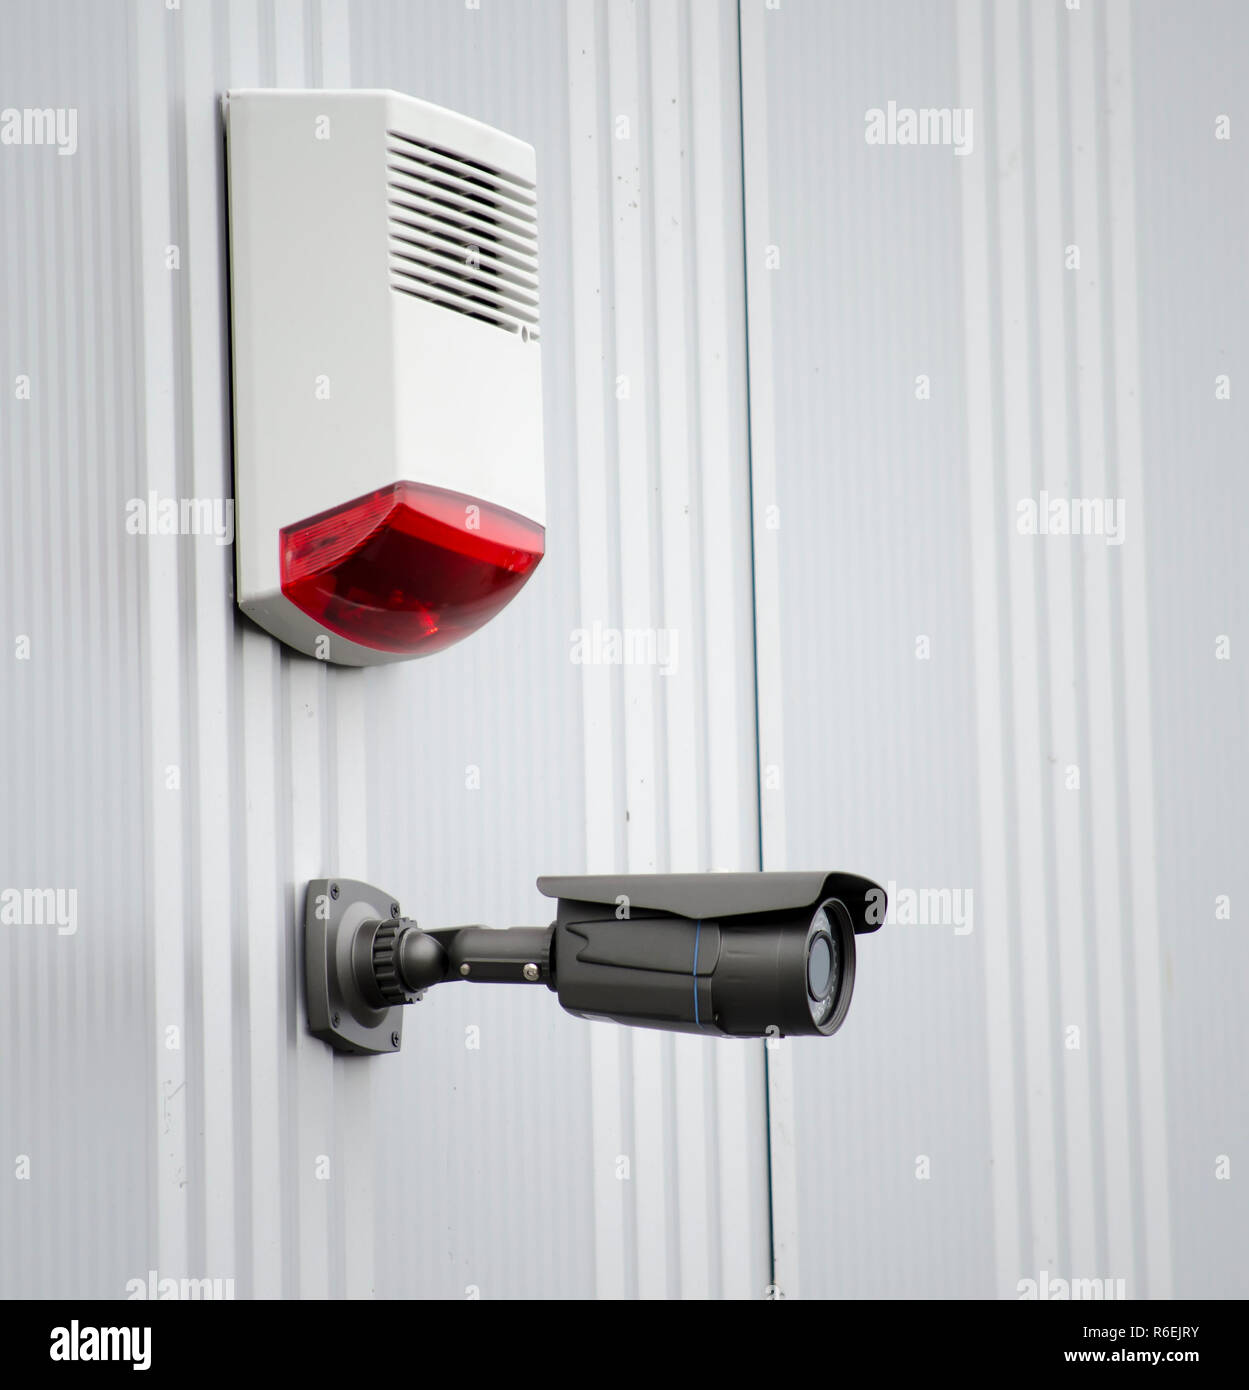 surveilance camera on industrial hall - Stock Image